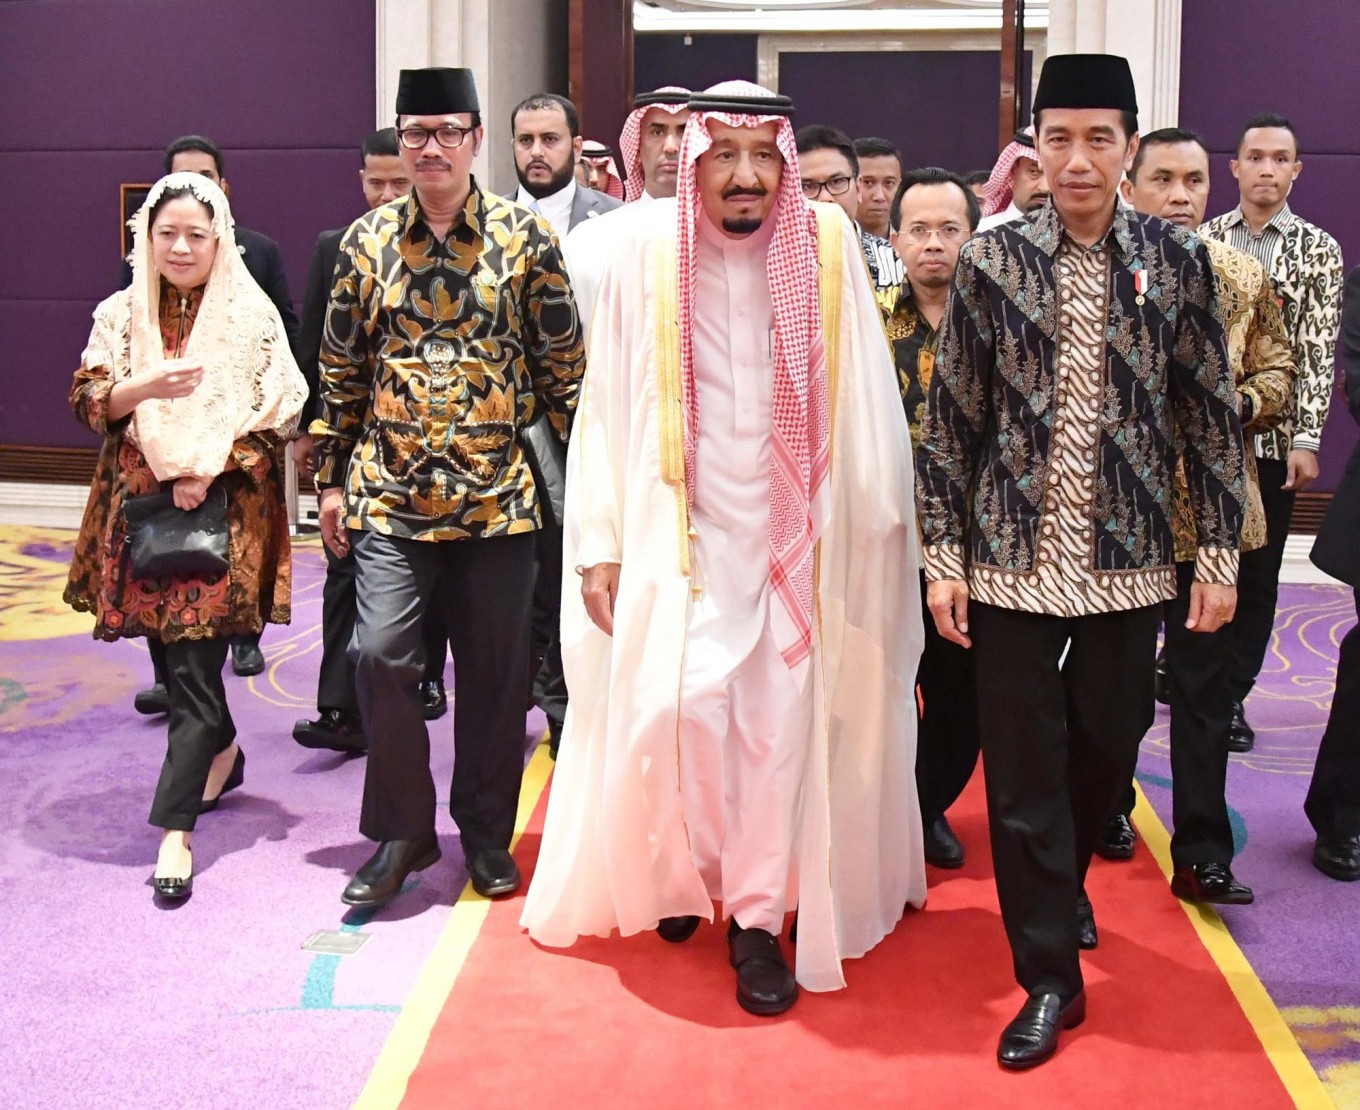 Jokowi let down by S. Arabia's low investment